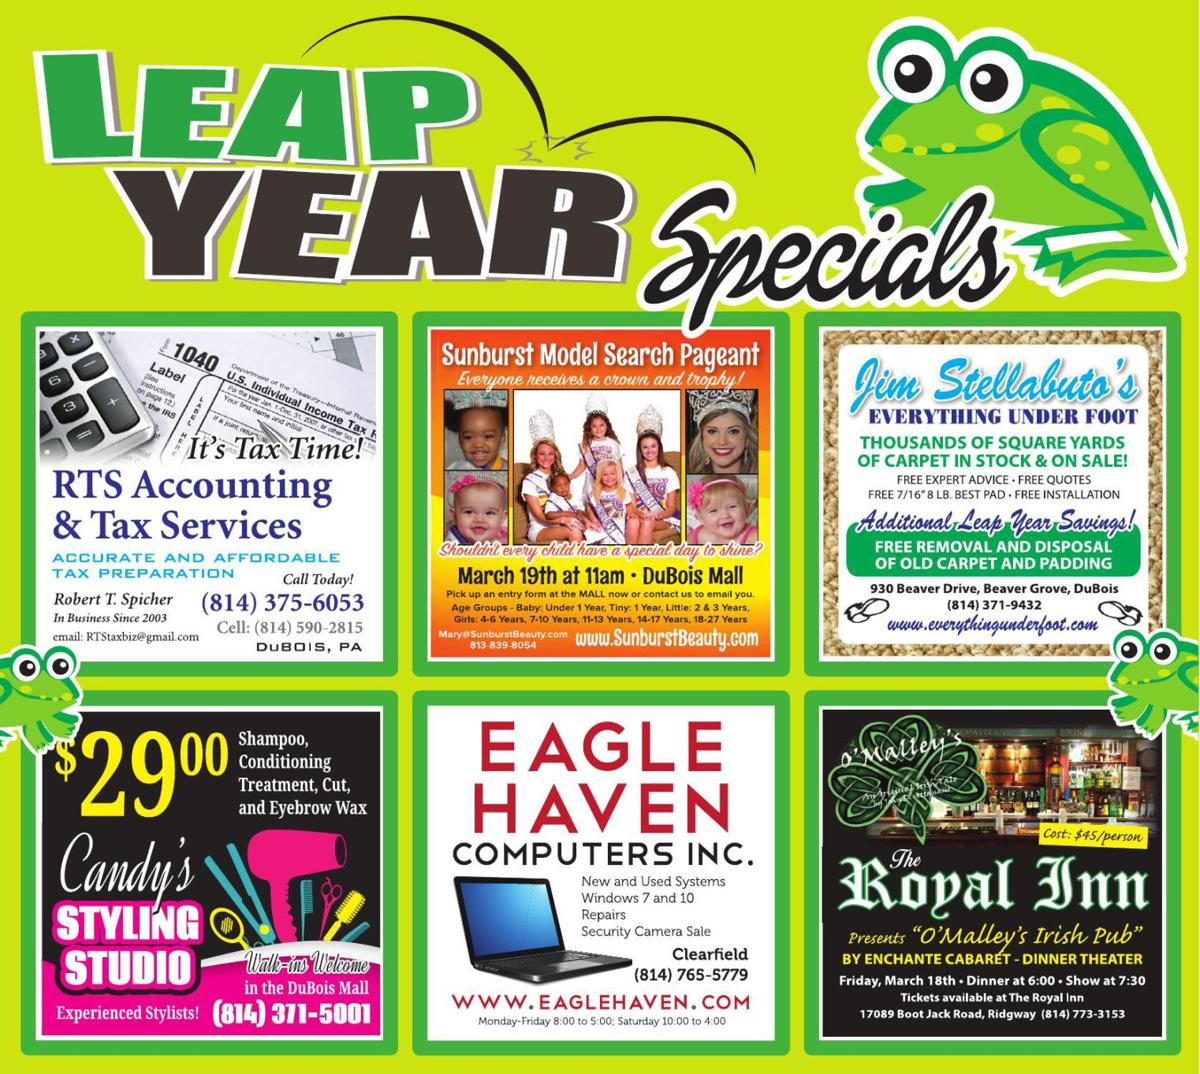 Leap Year specials